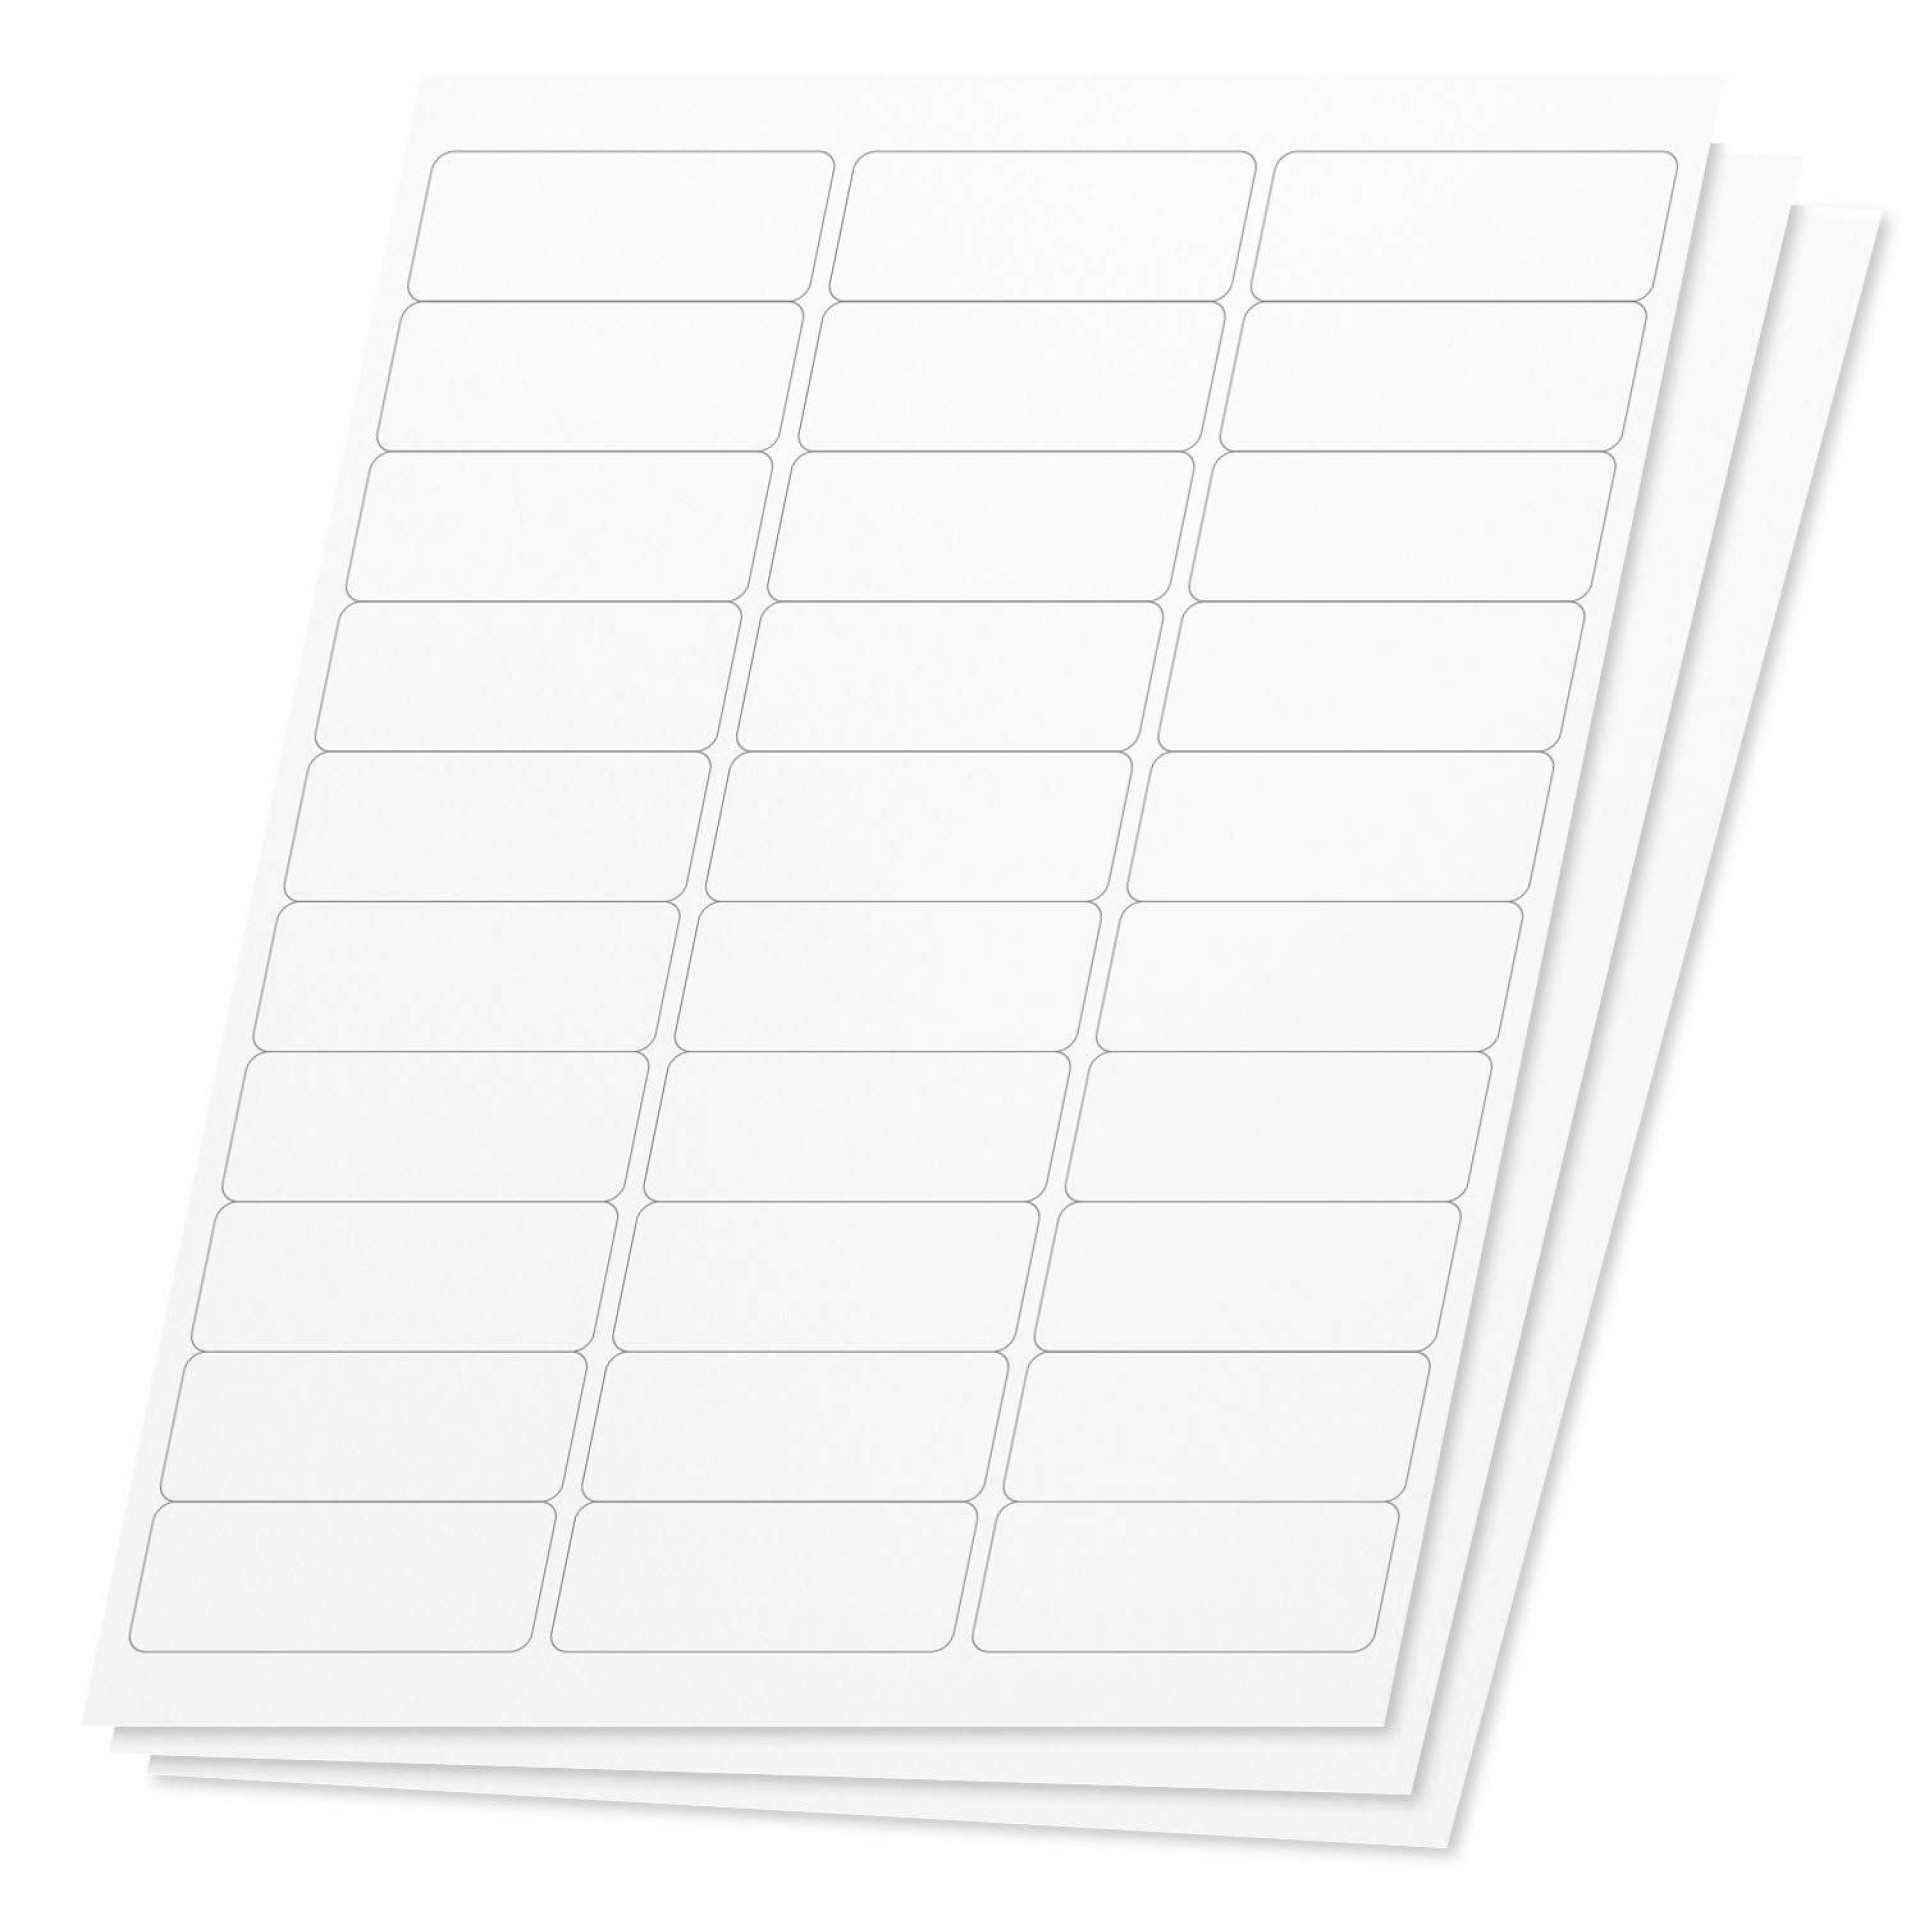 001 Stunning Microsoft Word Addres Label Template 30 Per Sheet Concept 1920